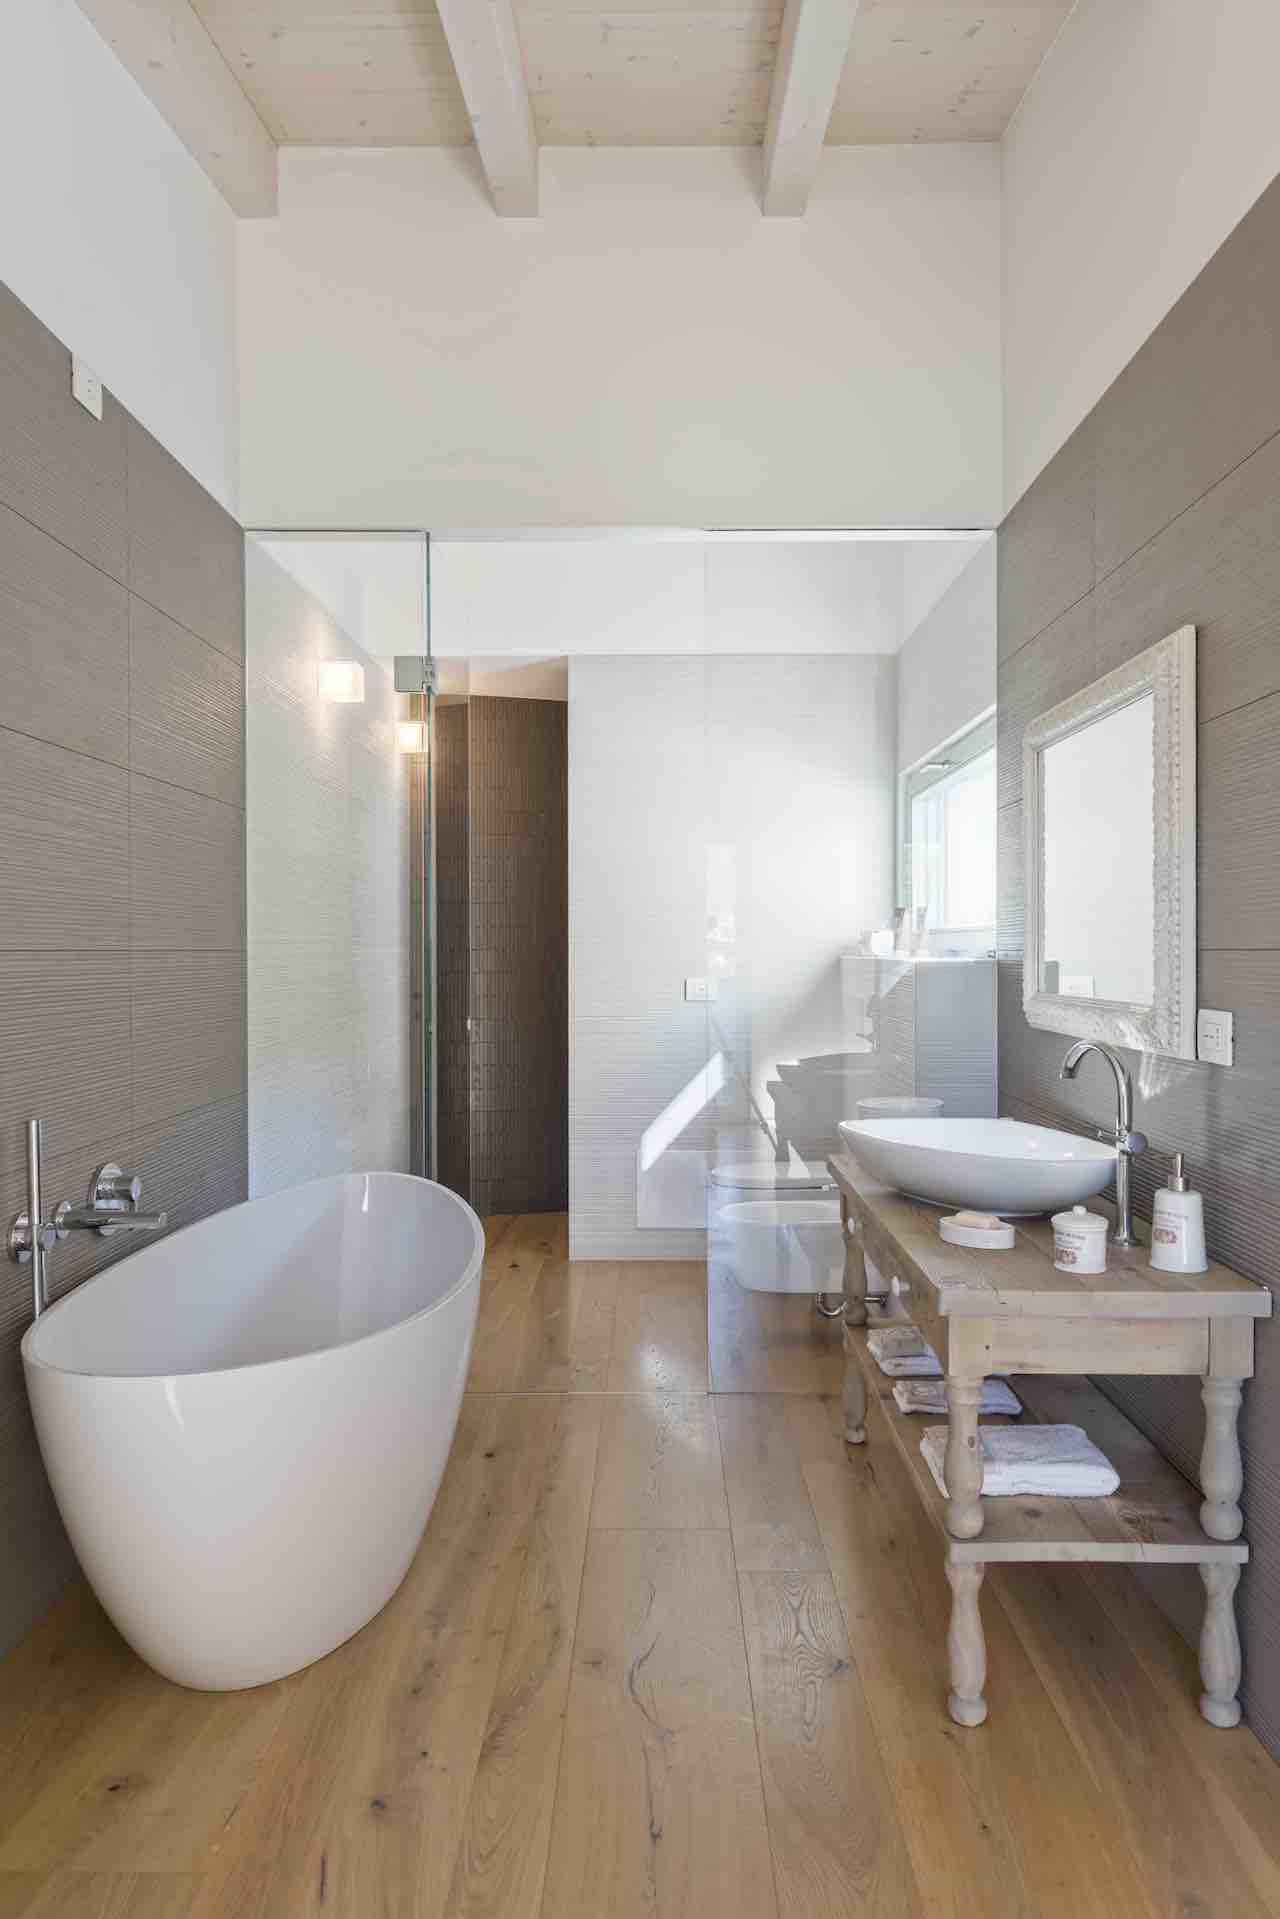 In the bathroom, a winning combination of modern design and vernacular wooden furniture.